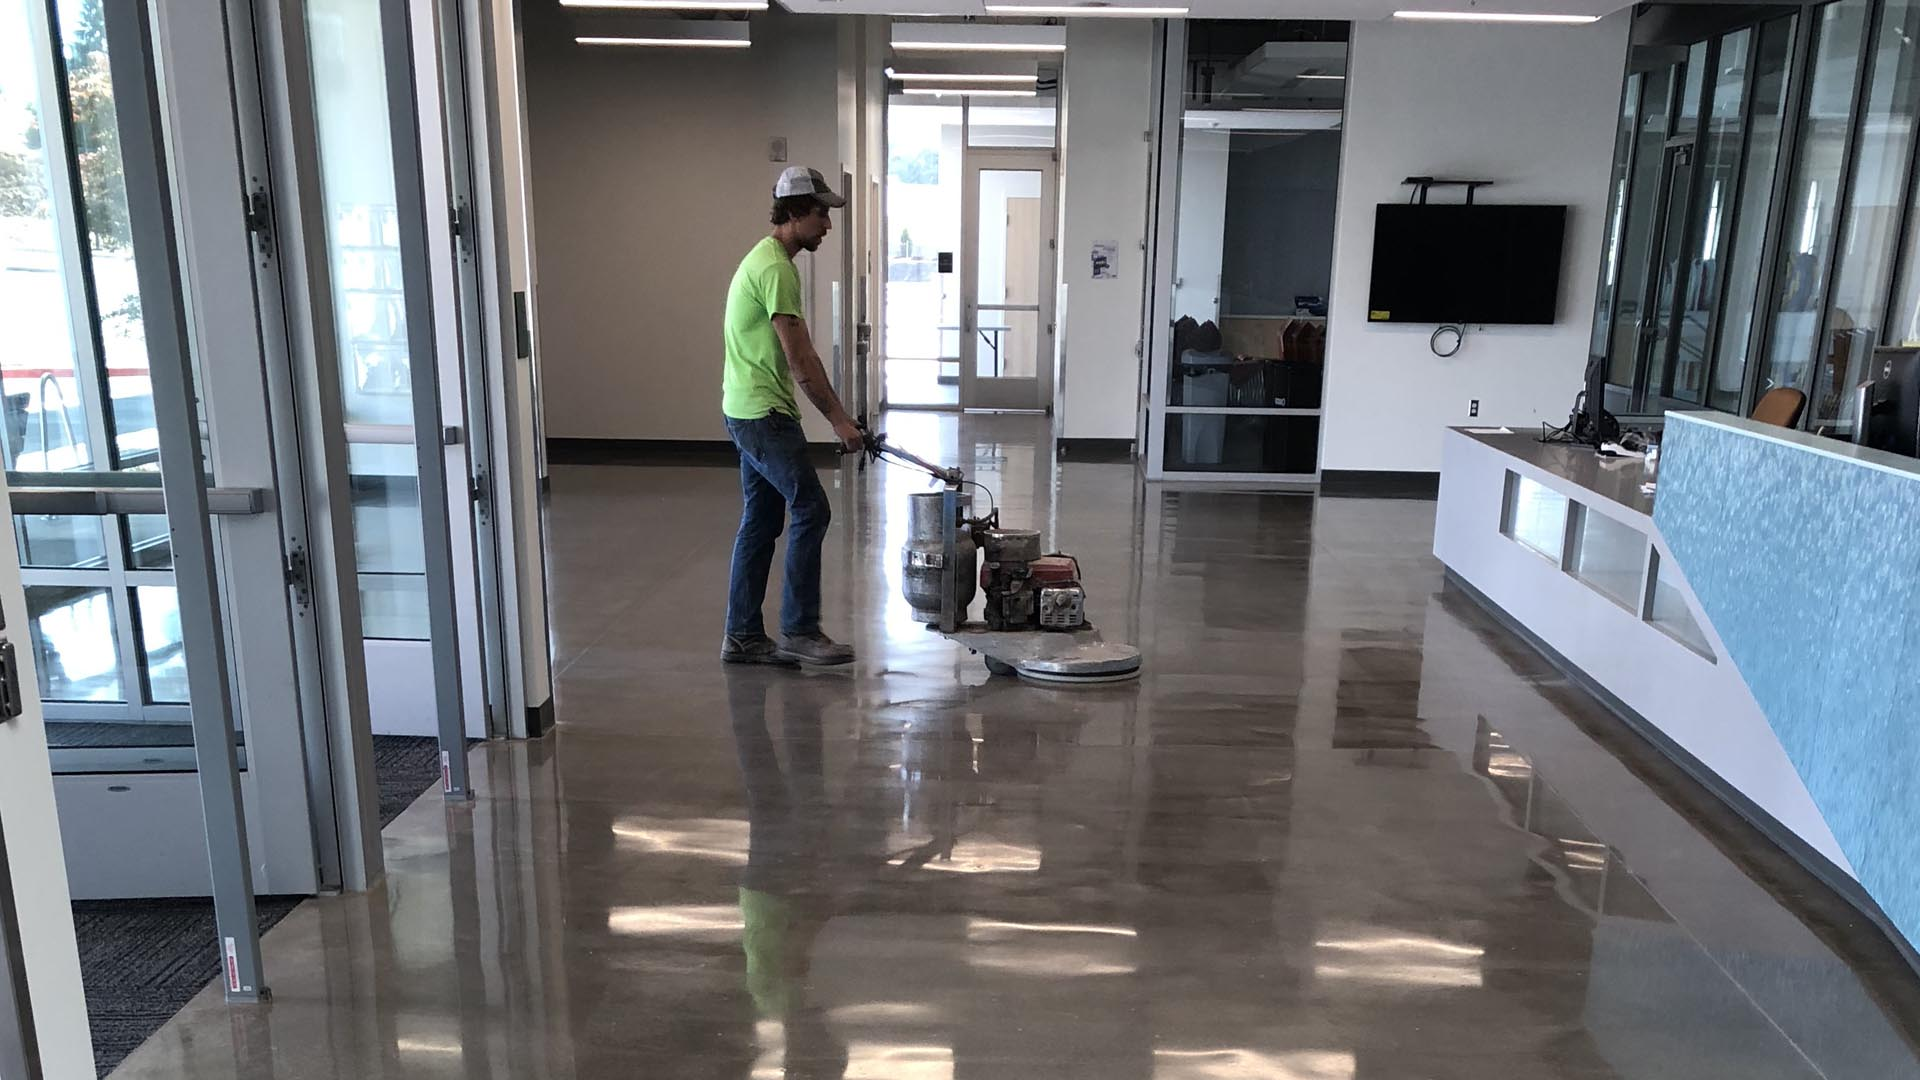 JS Concrete Finishing LLC: Polished Concrete,  Epoxy Floor Coating and Concrete Grinding Company in Portland OR, Beaverton OR and Tigard OR